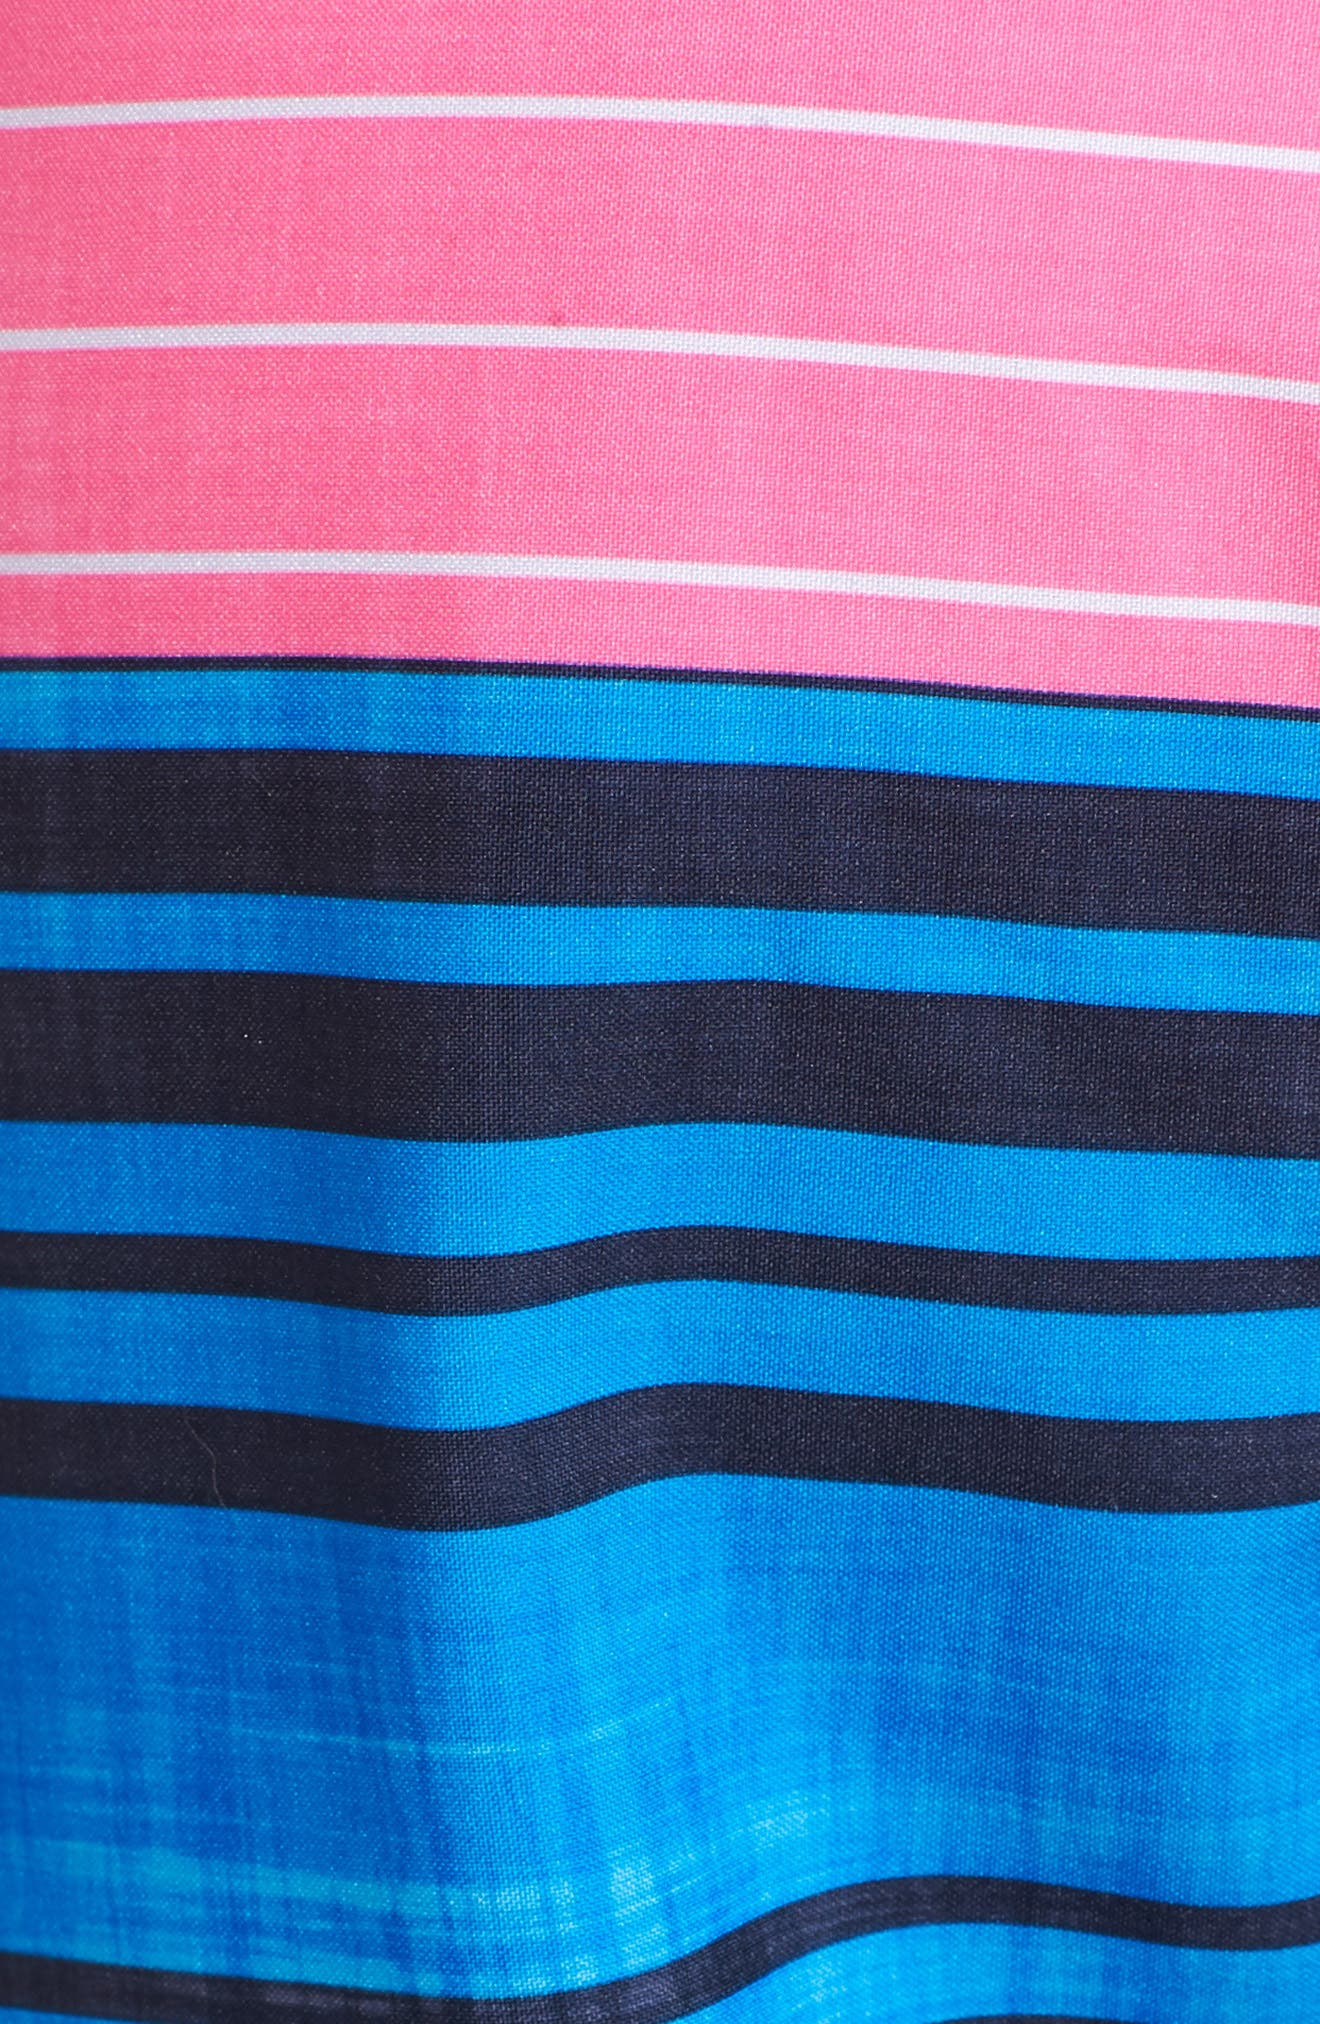 Strands Board Shorts,                             Alternate thumbnail 5, color,                             406